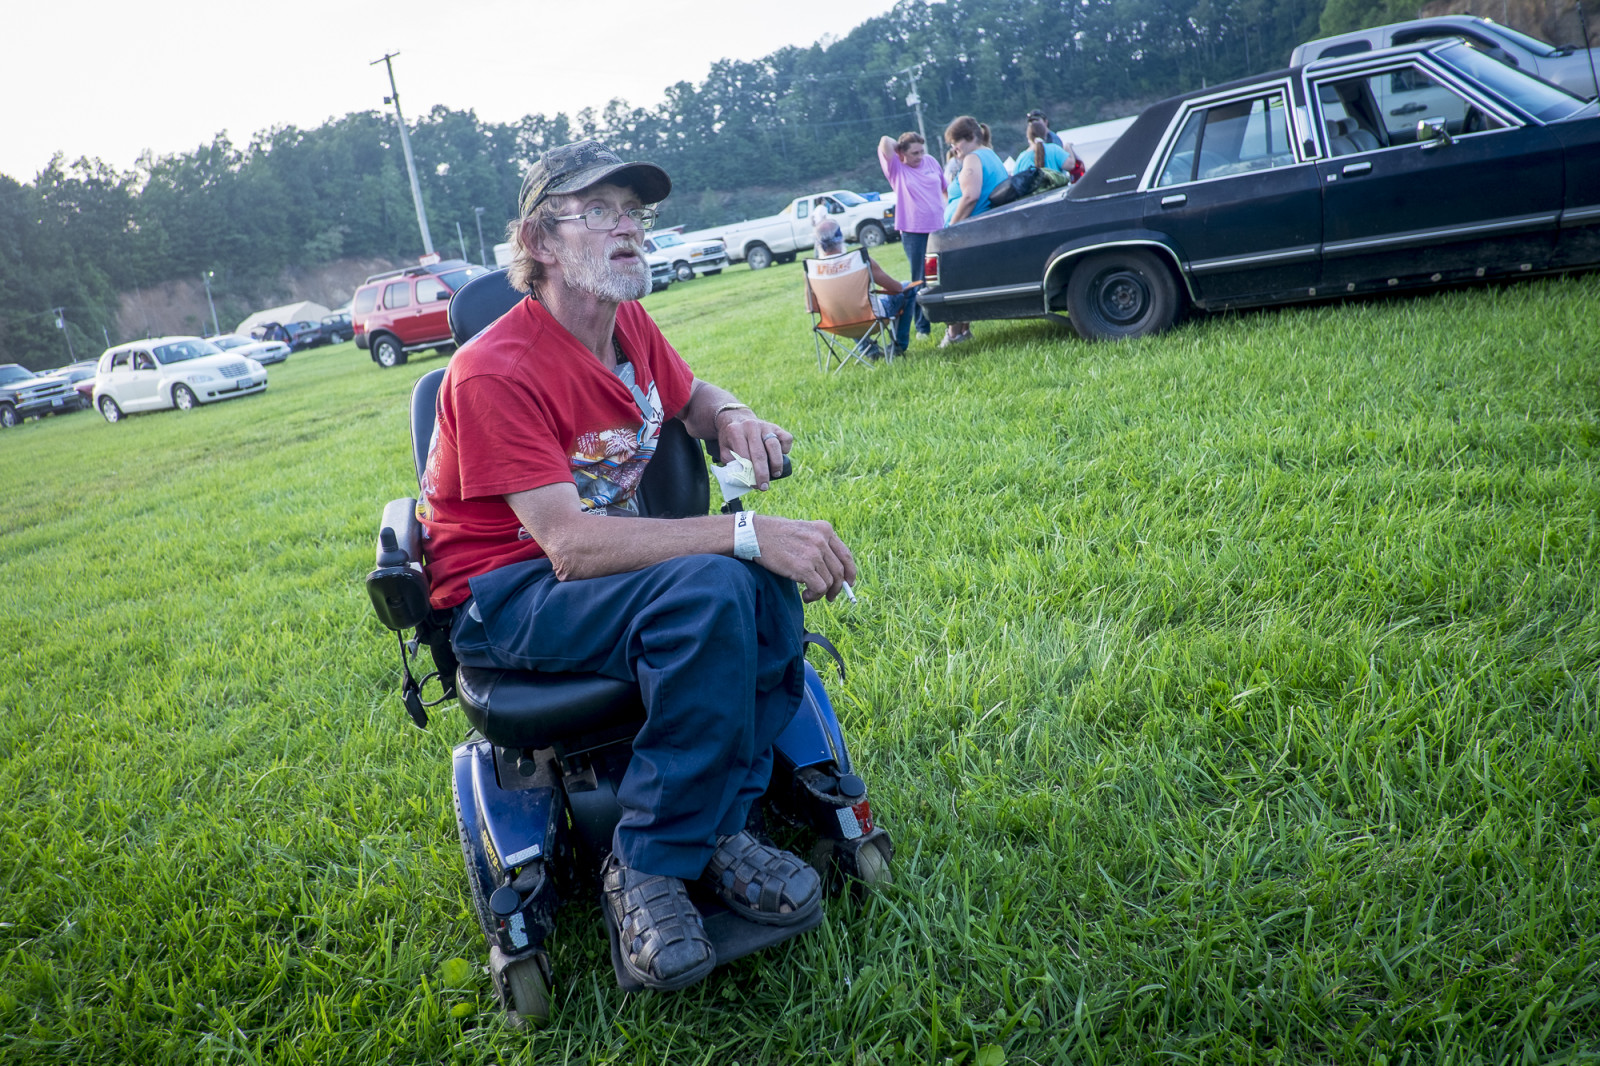 Wayne Moore, 55, of Clinchco. Virginia., waits in the parking lot at the Wise County Fairgrounds, where people hope to receive free medical care the next day at the 16th annual Remote Area Medical (RAM), clinic in Wise, Virginia. Photo: Pete Marovich/Bloomberg